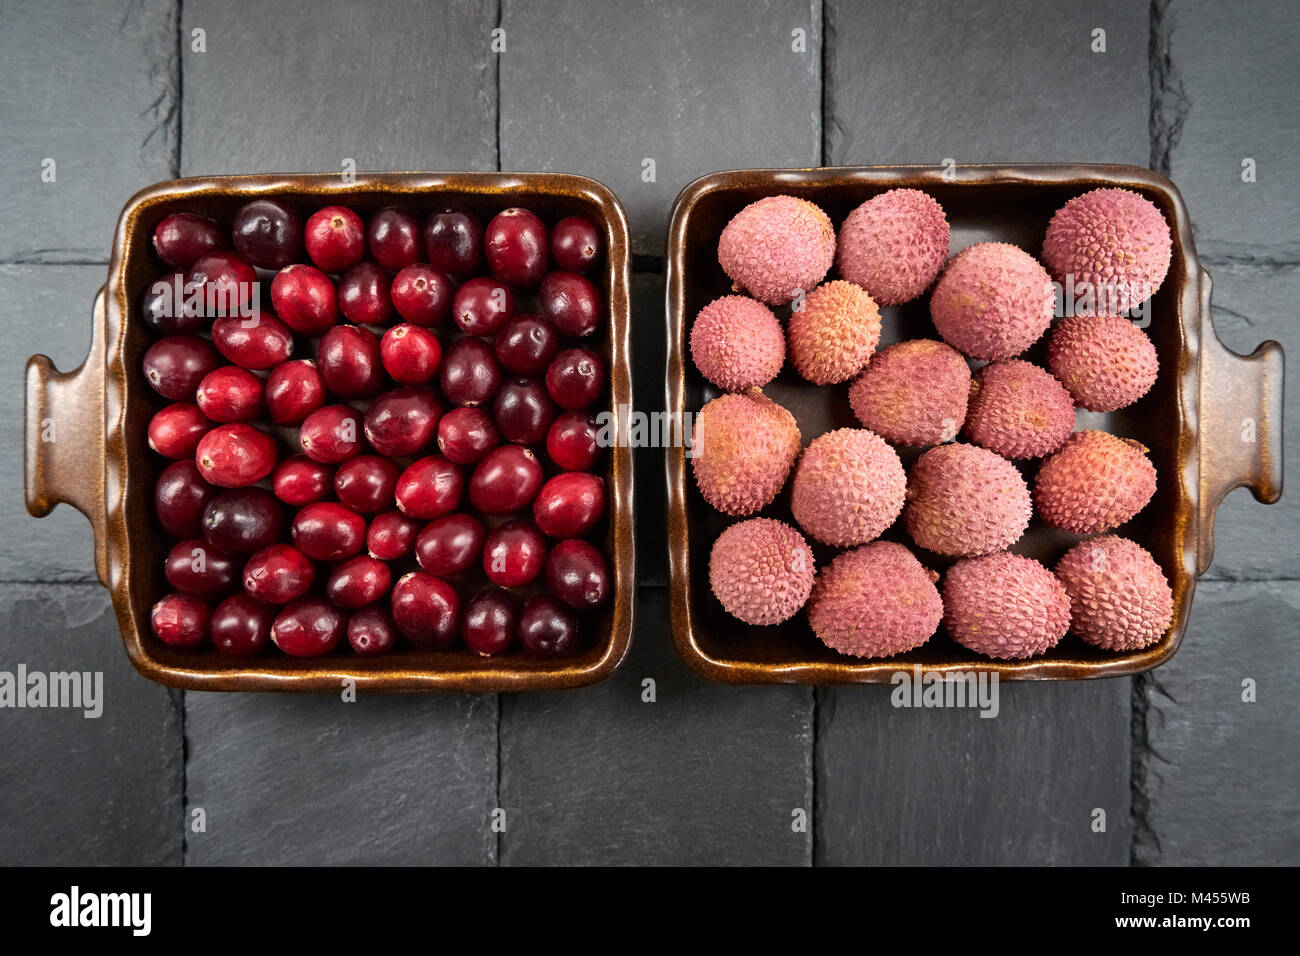 Cranberries next to lychee fruits - two square, symmetrically arranged fruit bowls - Stock Image